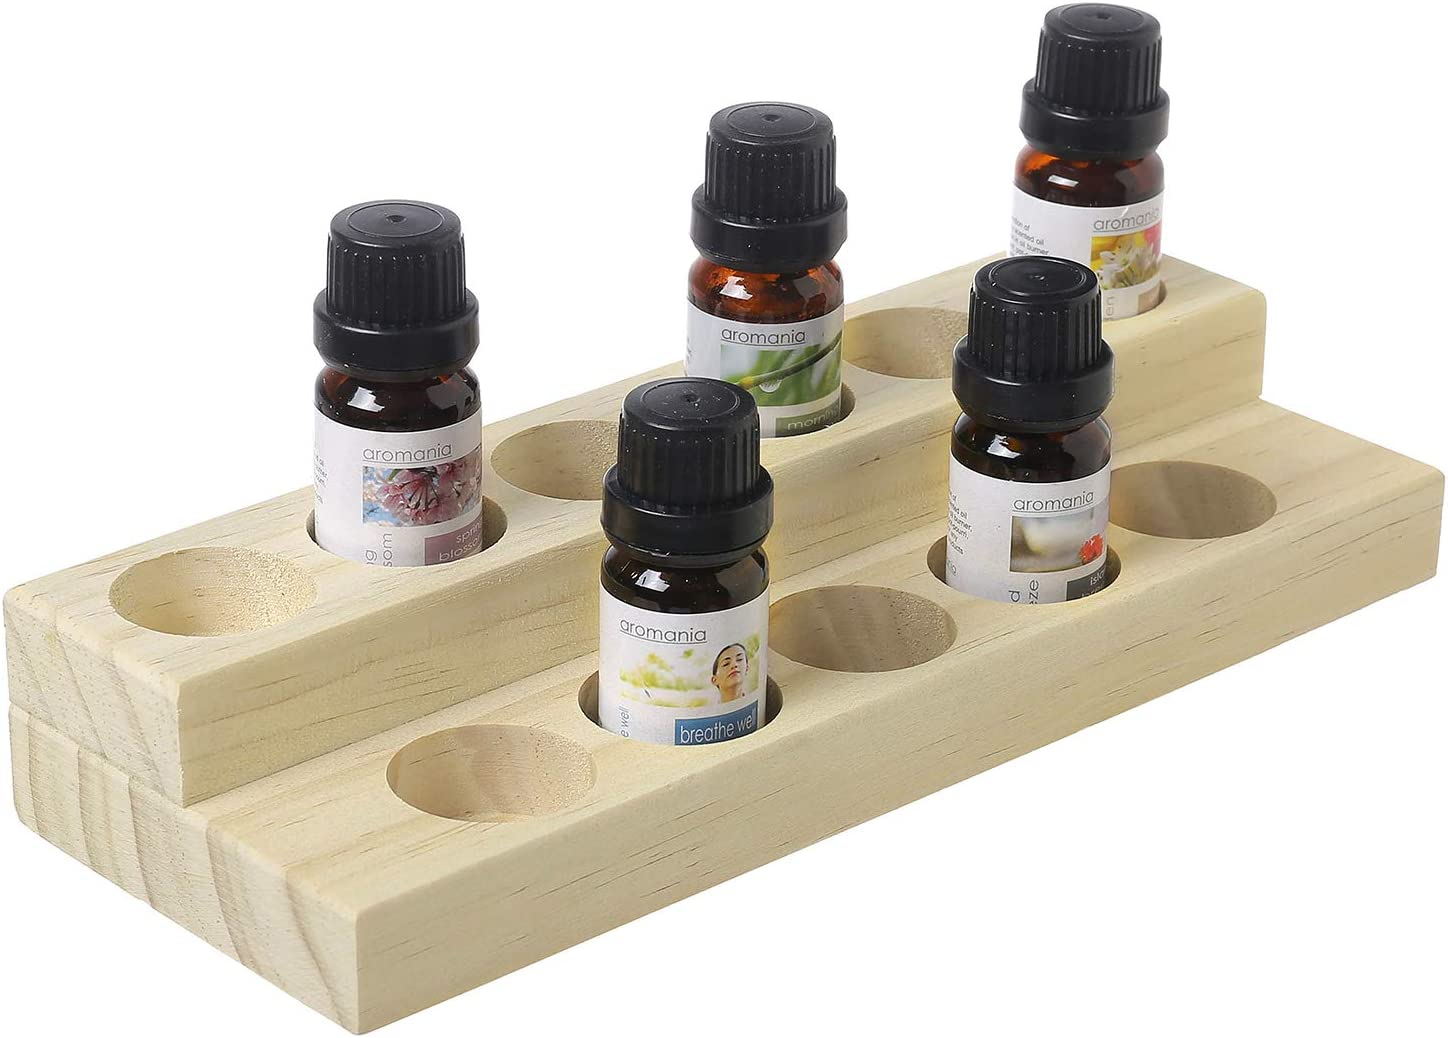 MyGift 2-Tier Natural Wood Essential Oil Display Stand, Cosmetic Organizer Rack – Holds up to 11 20ml Bottles